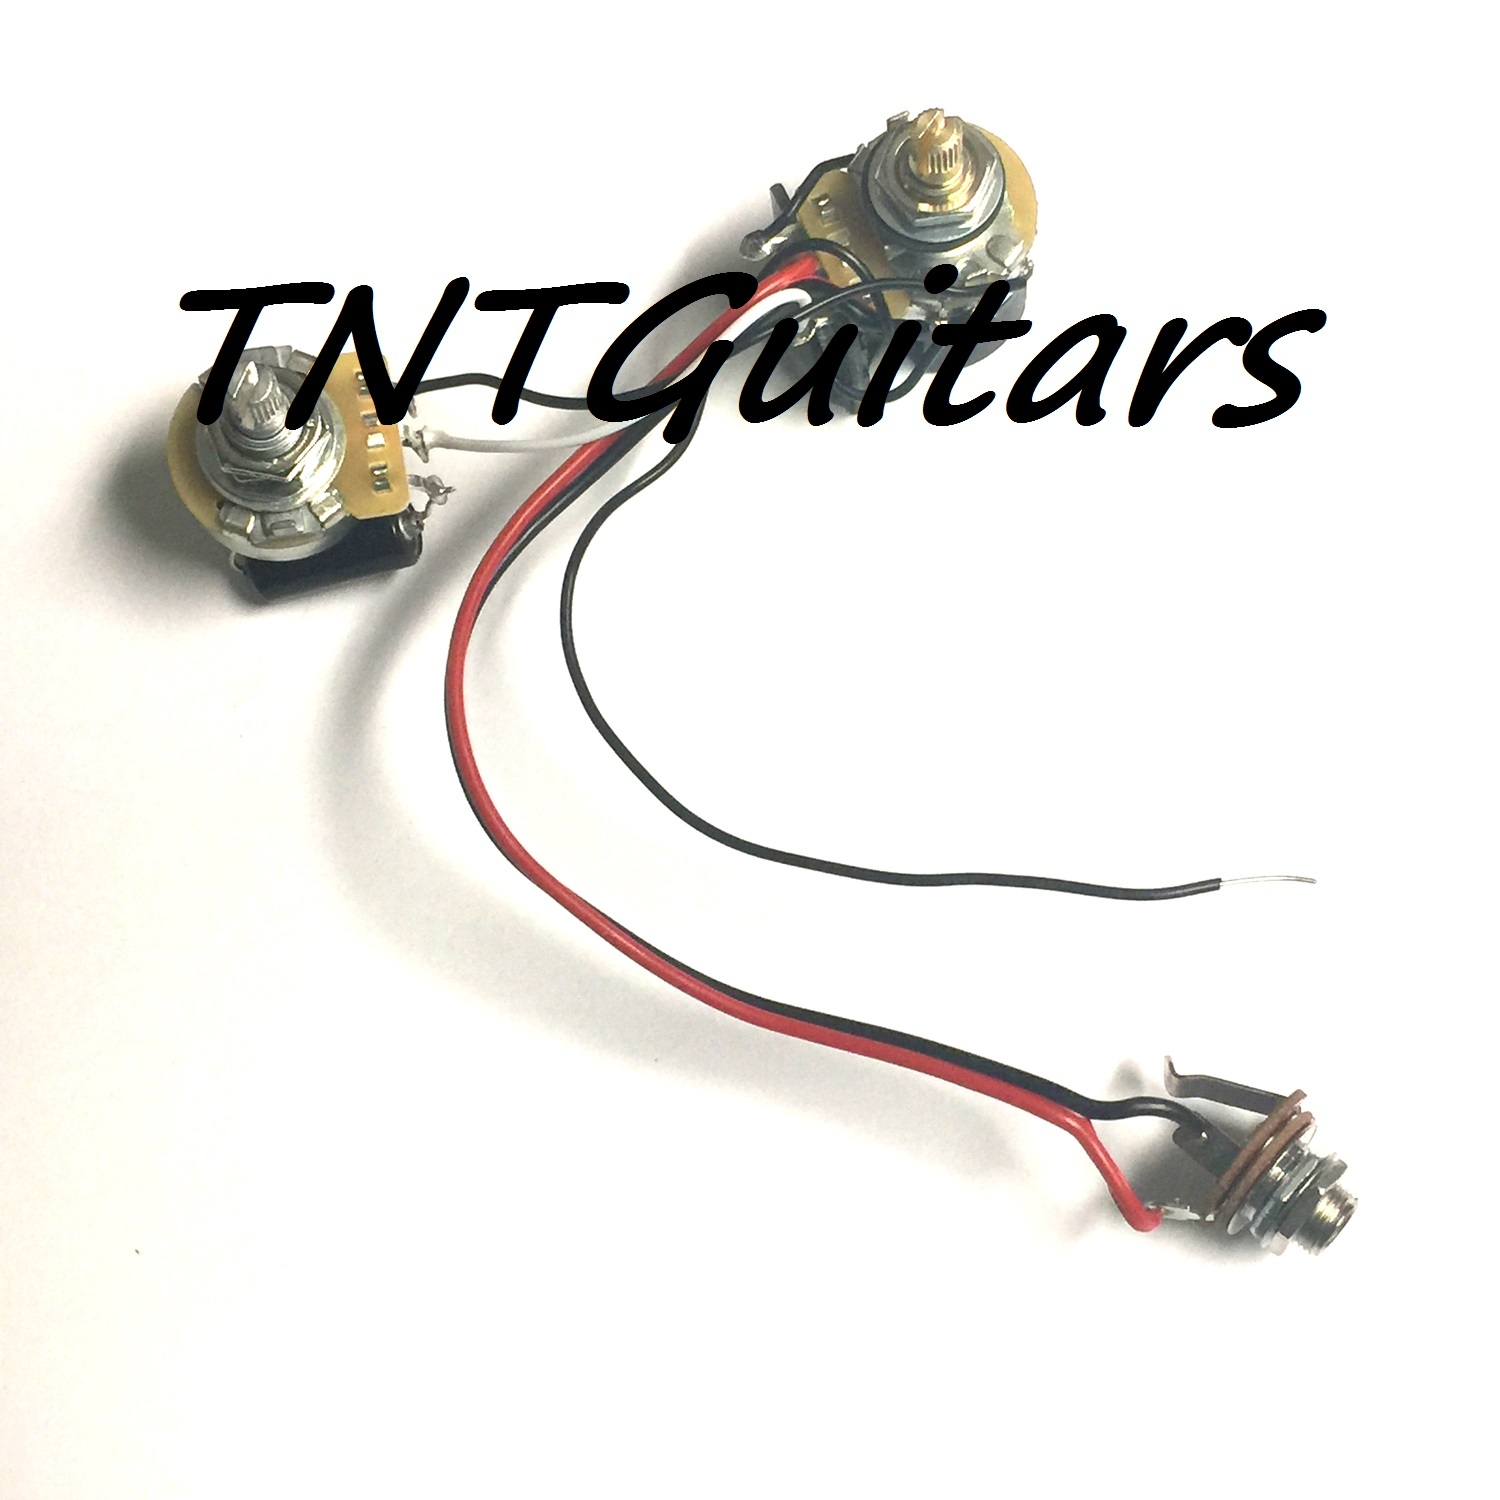 1014ctsonevolonetonecoilcutblackbee1text 1v1t one pickup wiring harness ~ cts precision push pull, coil split Humbucker Coil Split S at alyssarenee.co